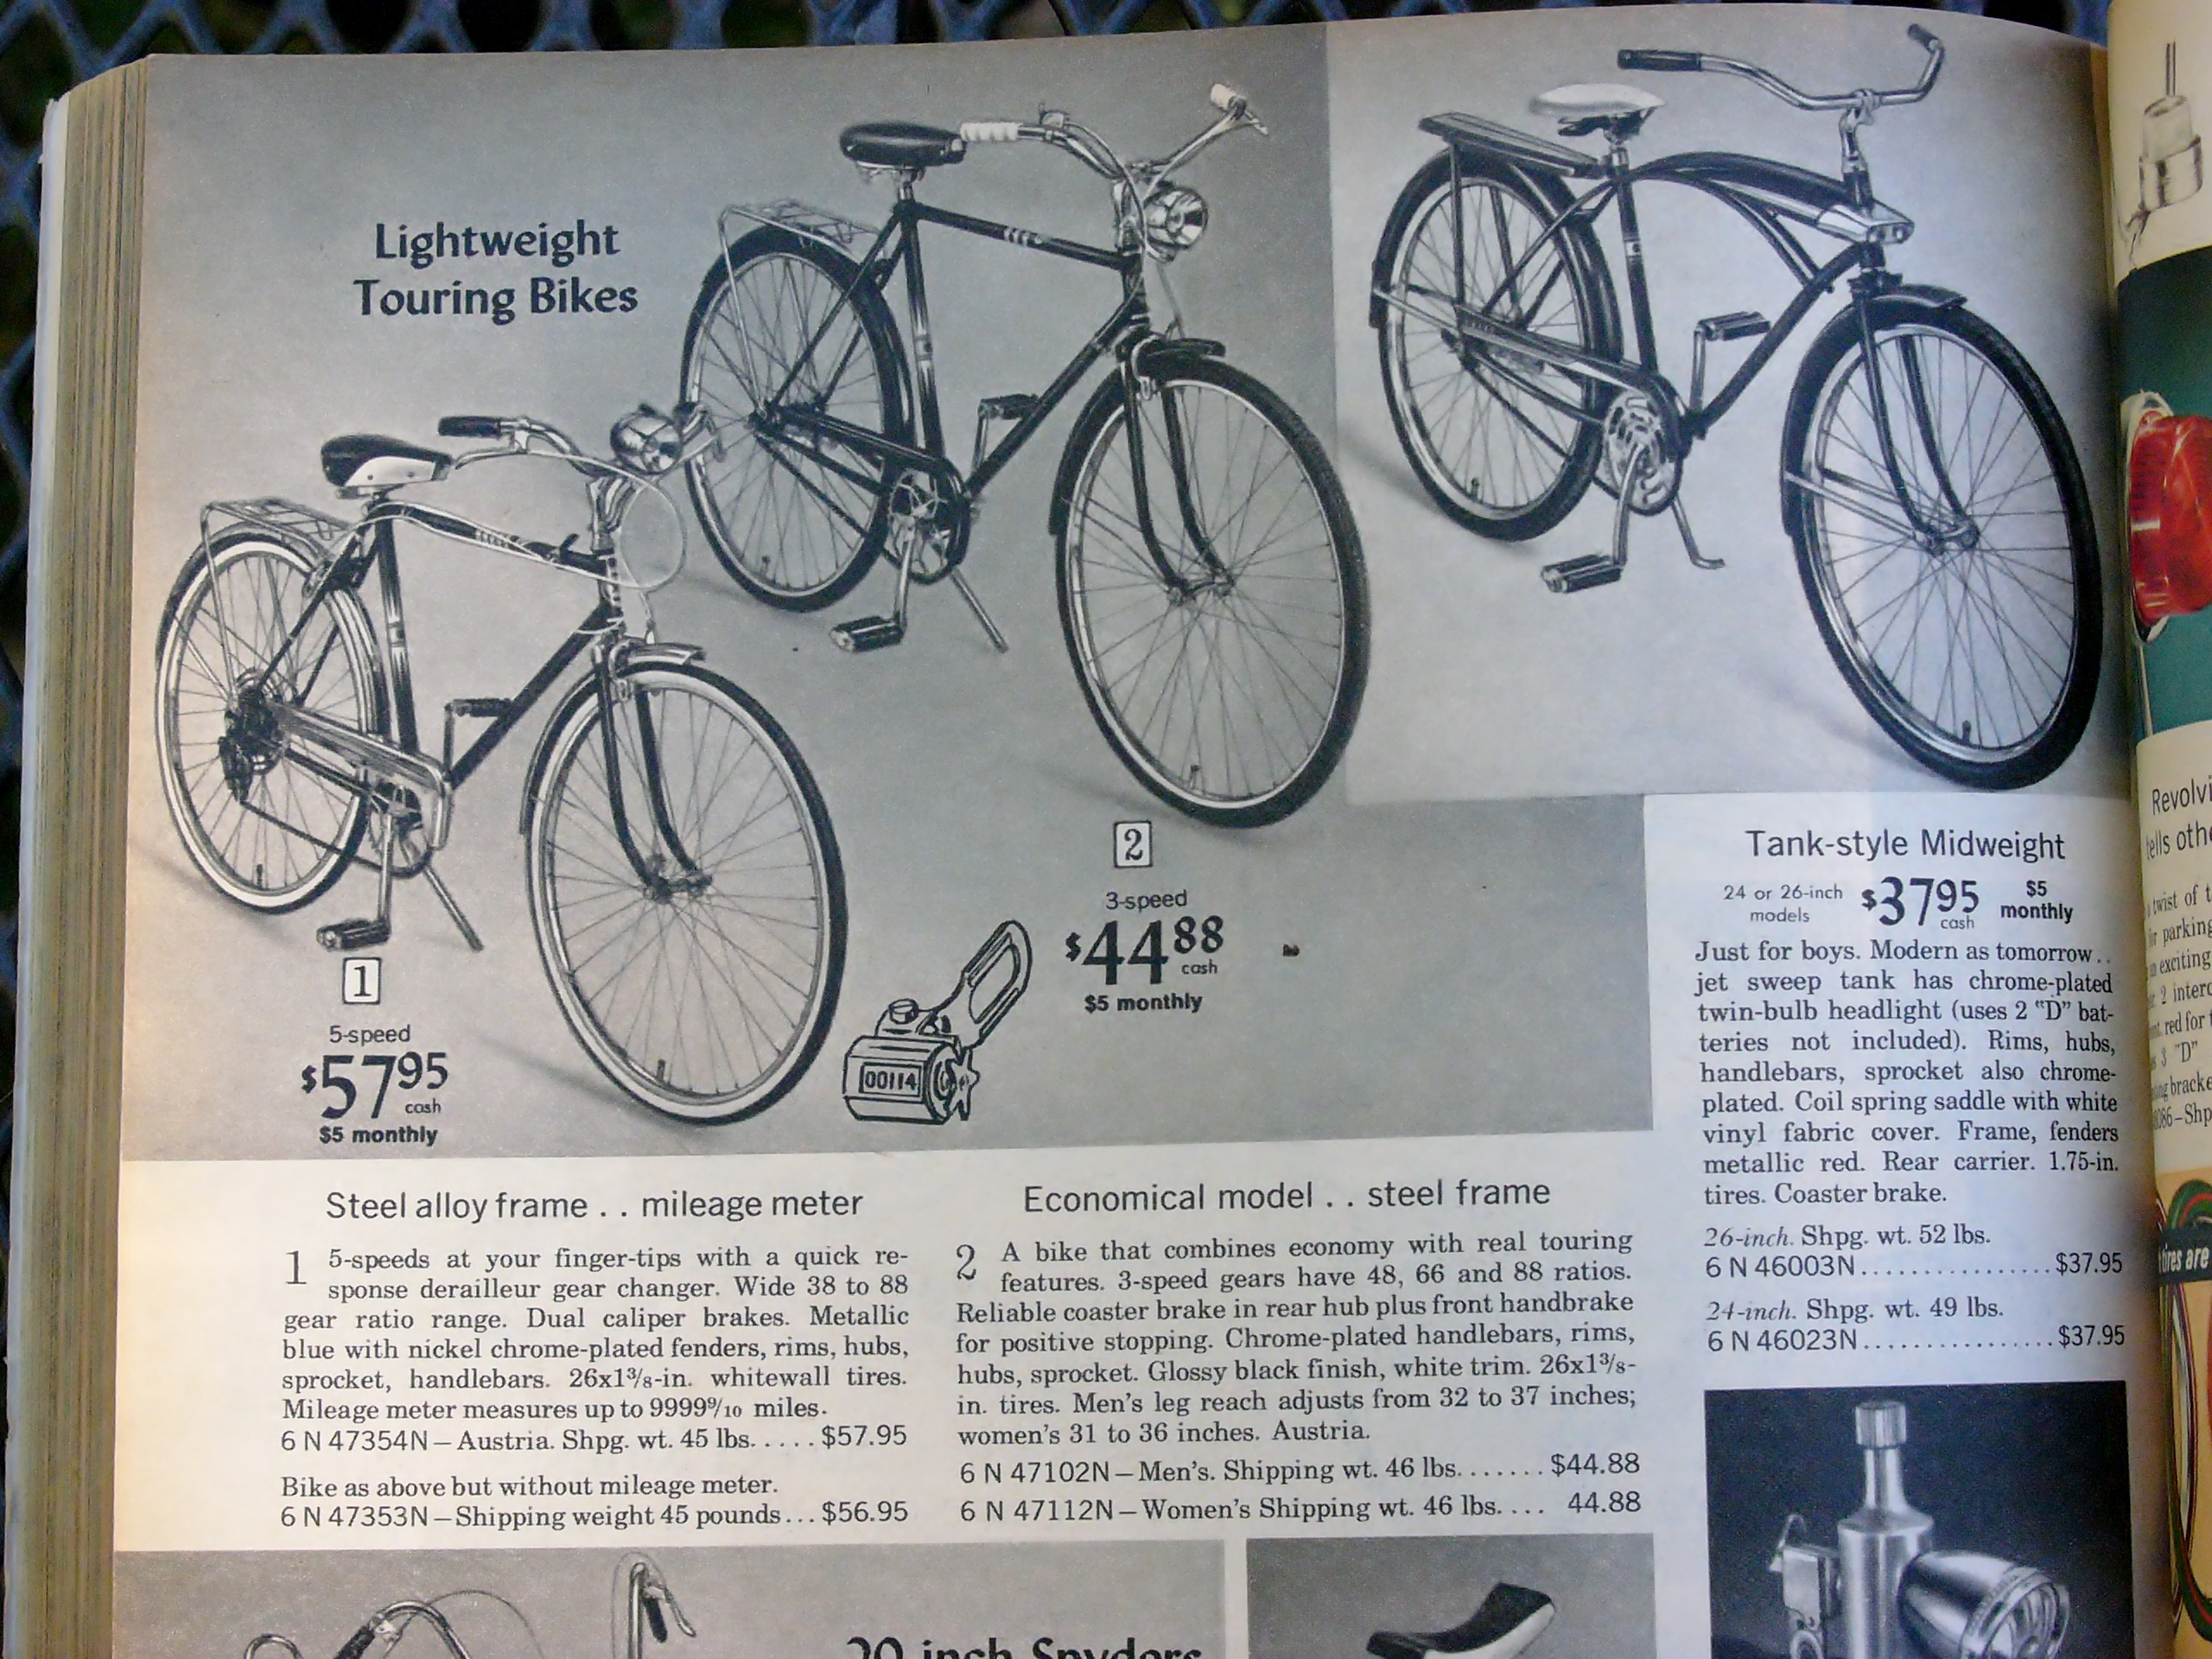 1960 sears bicycle - 2015 10 02 004